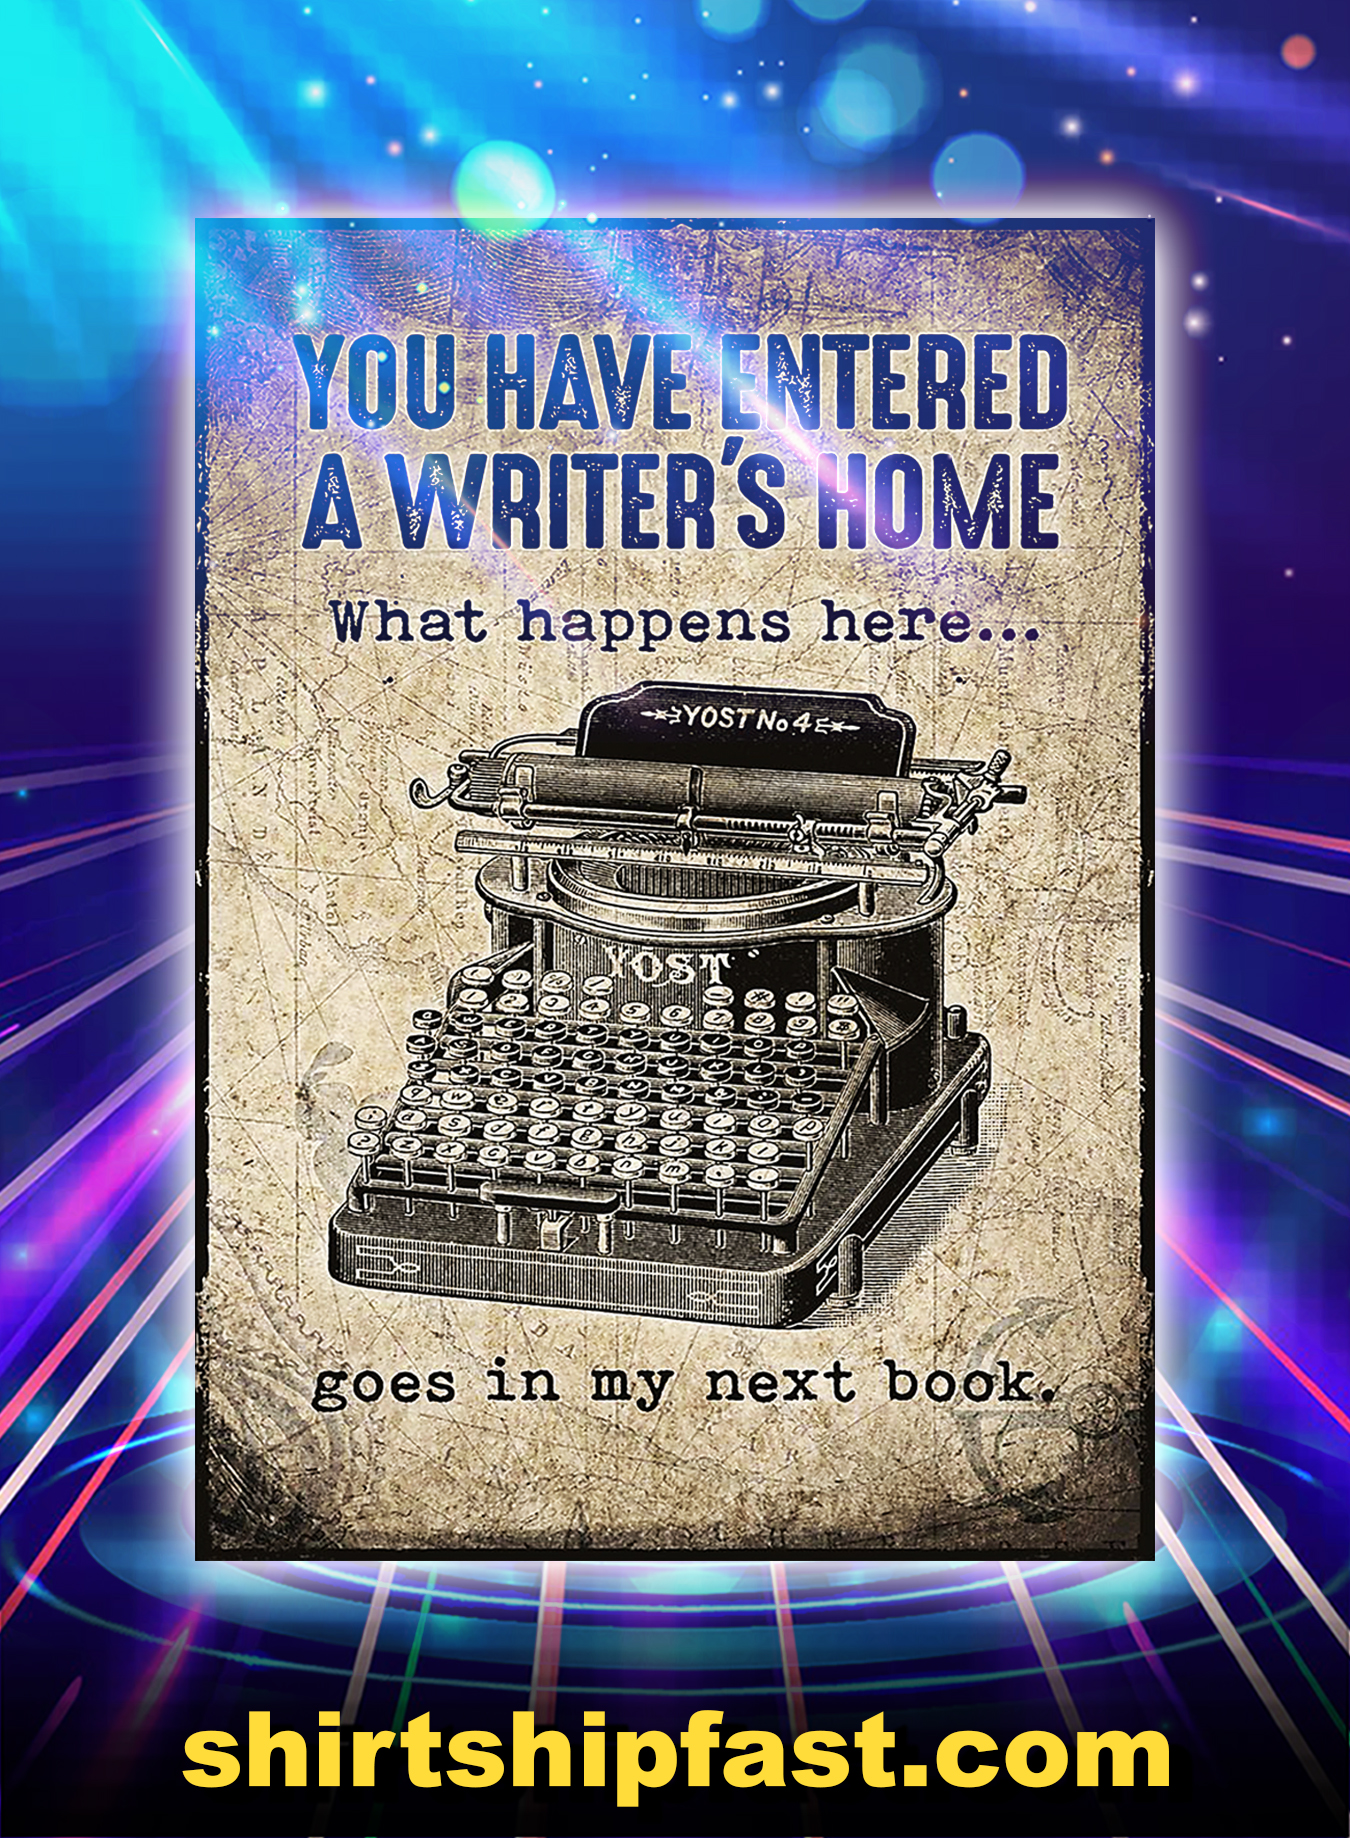 You have entered a writer's home what happens here goes in my next book poster - A2